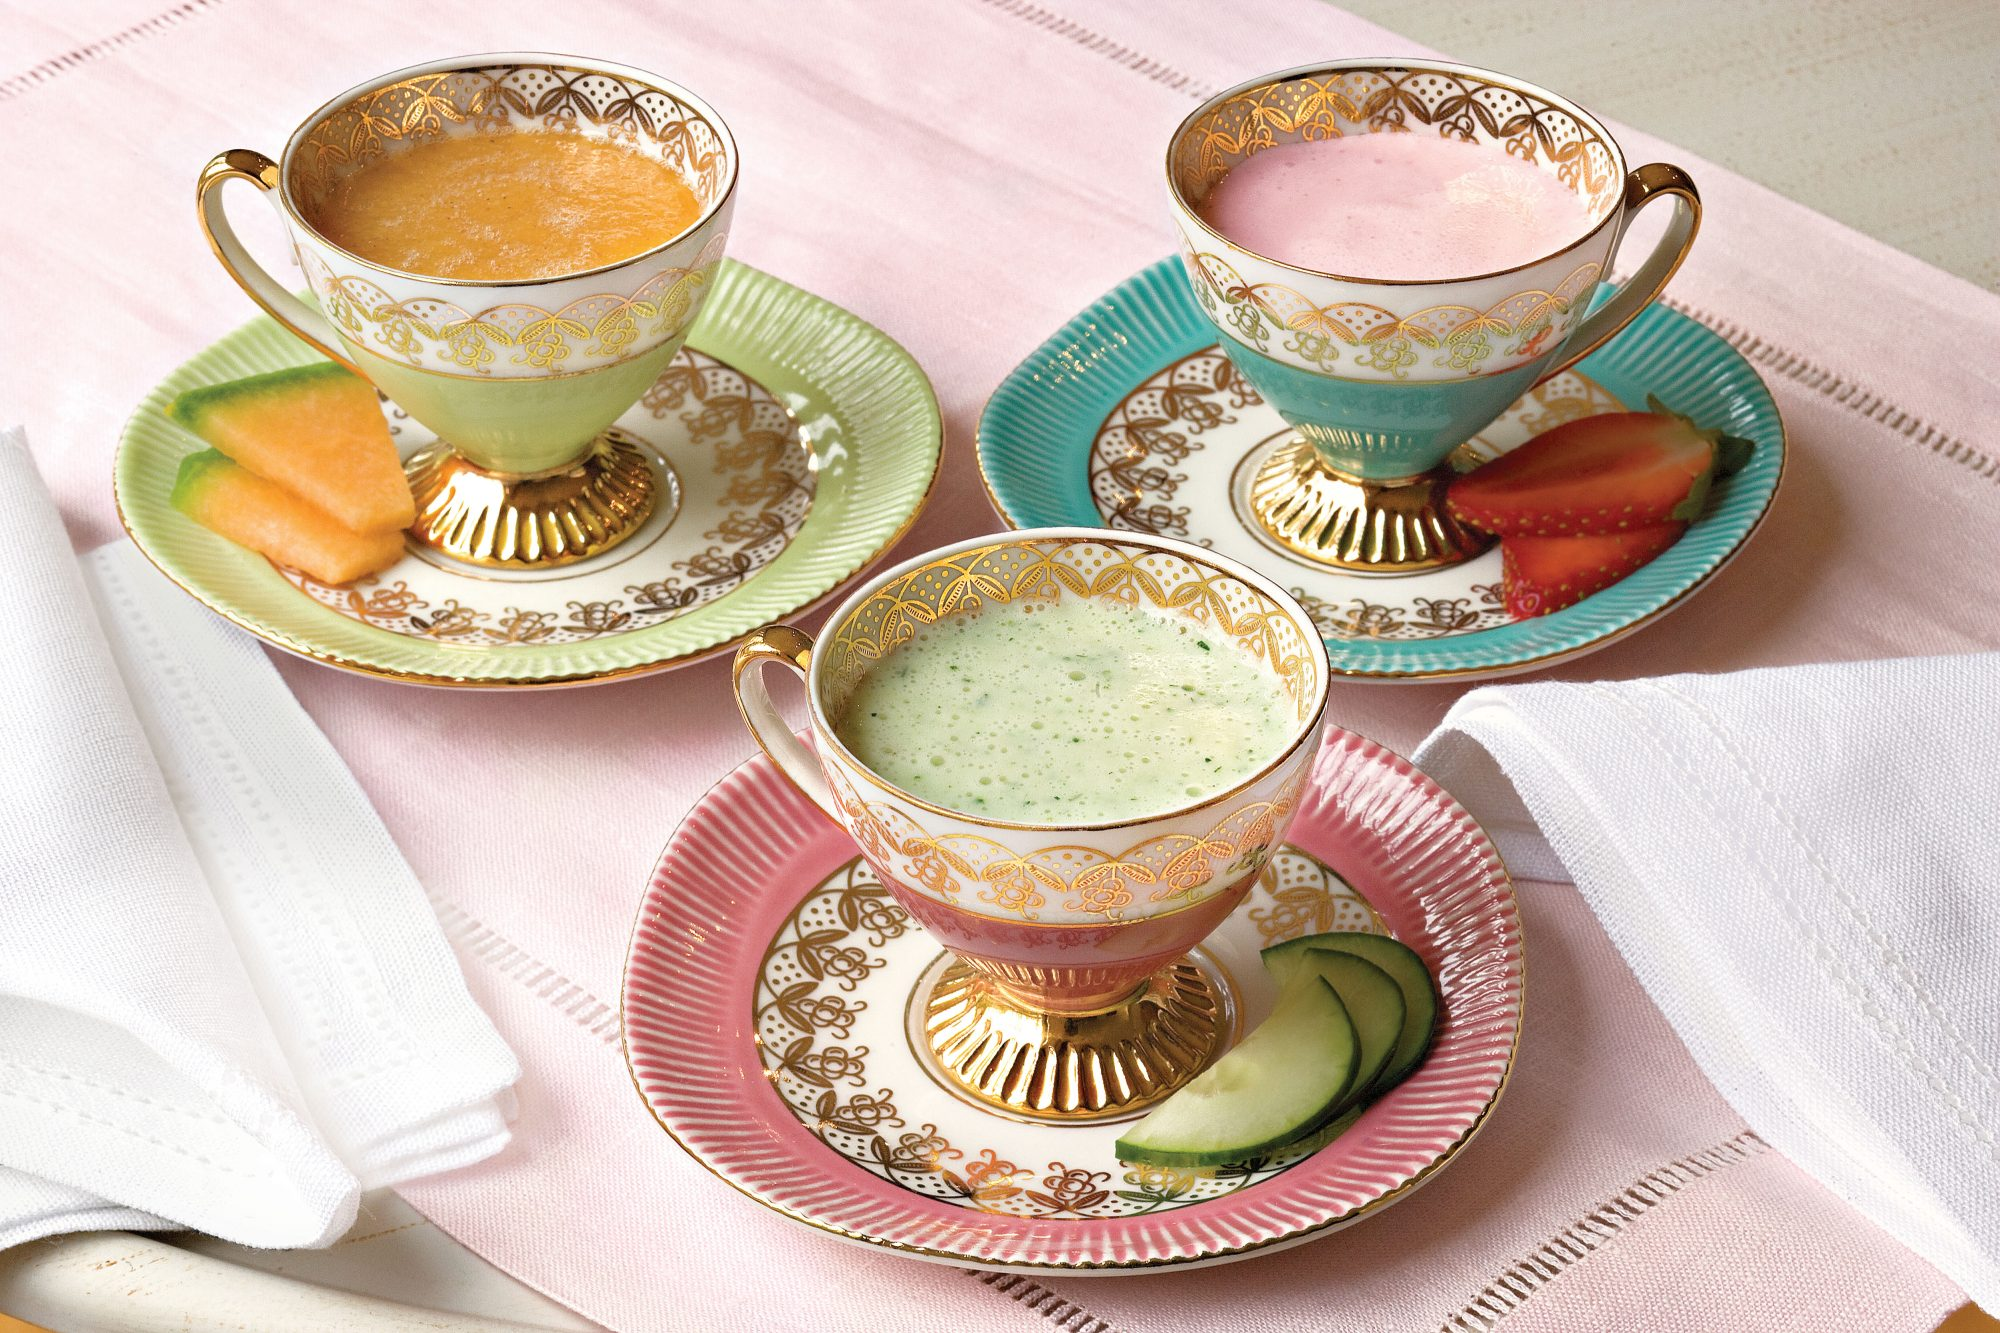 Chilled Cucumber, Cantaloup, and Strawberry Soups